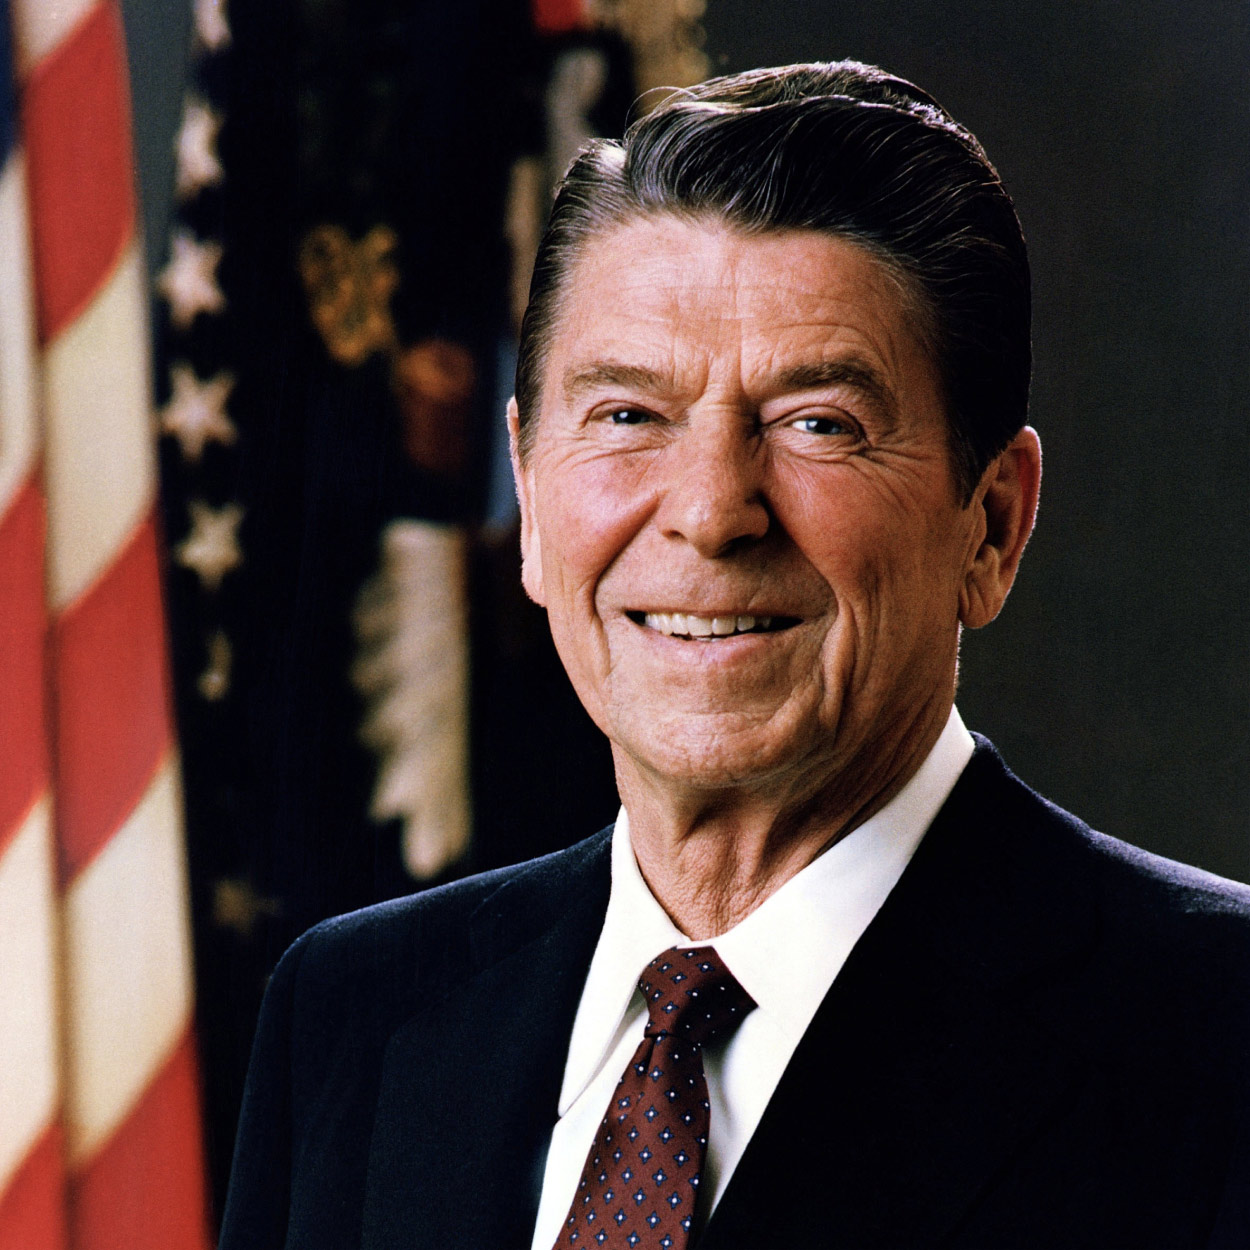 Portrait of Ronald Reagan, the 40th President of the United States